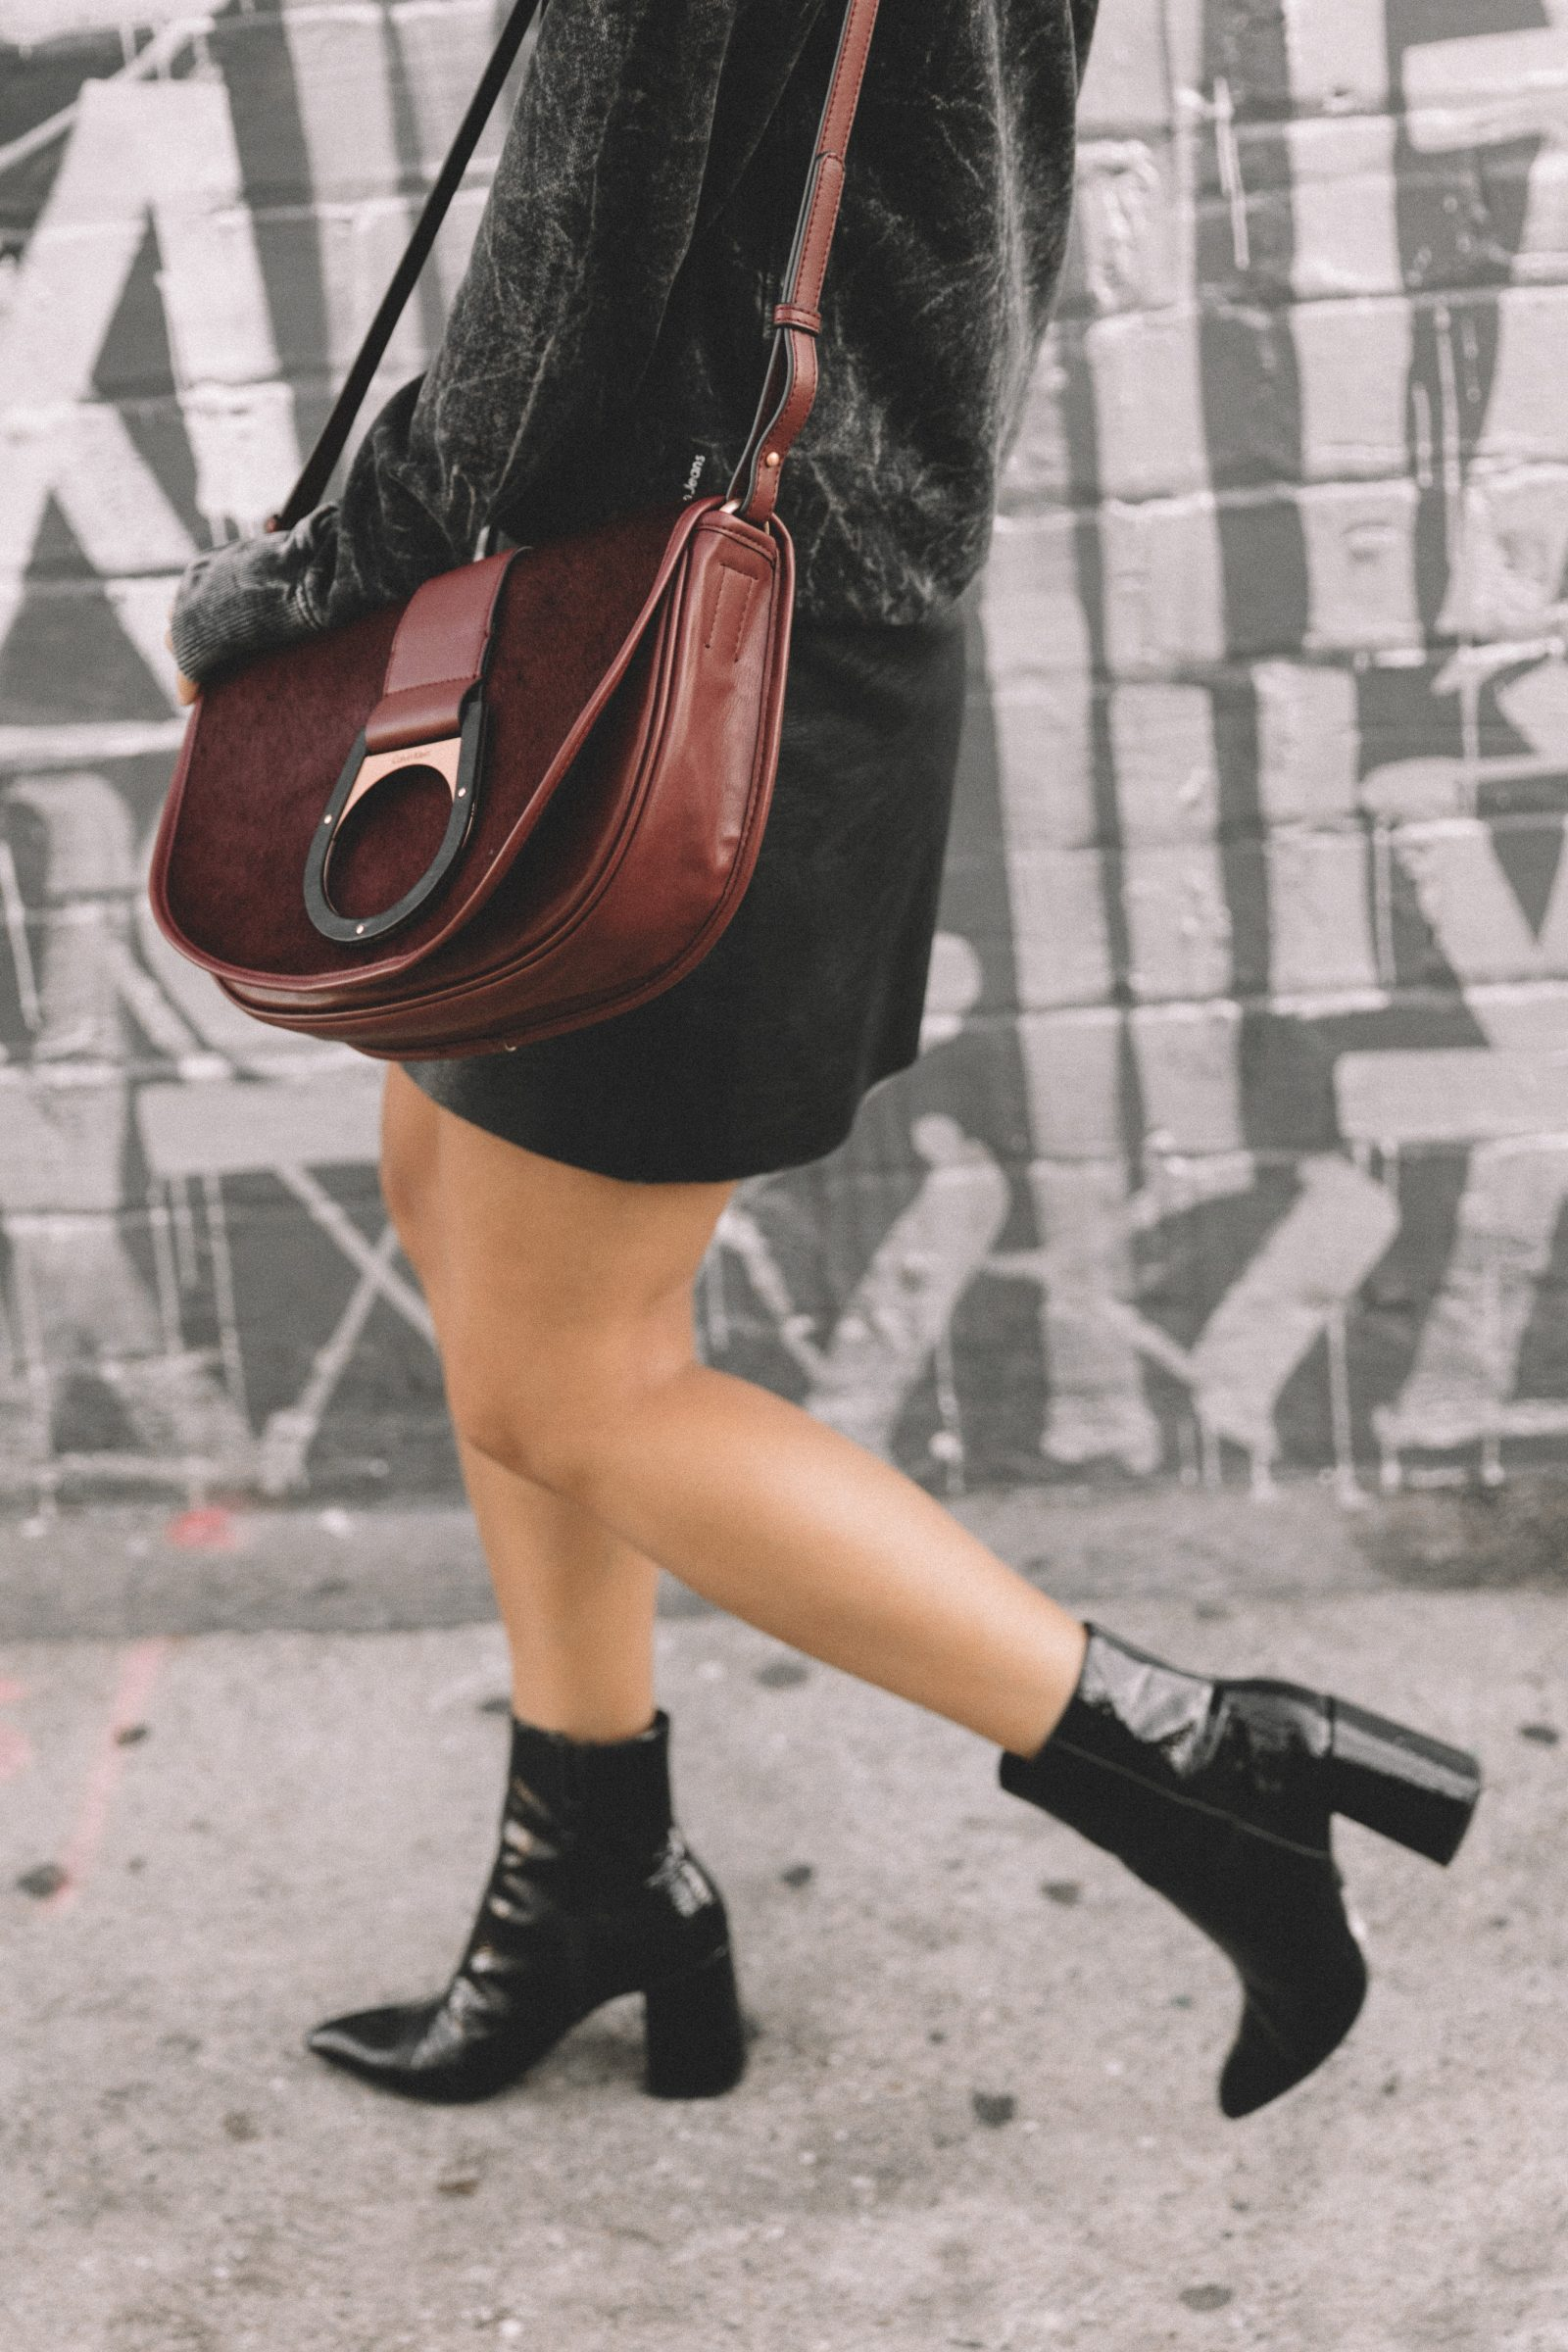 calvin_klein_bag-burgundy_bag-ck_sweatshirt-leather_shirt-total_black_outfit-street_style-los_angeles-collage_vintage-25